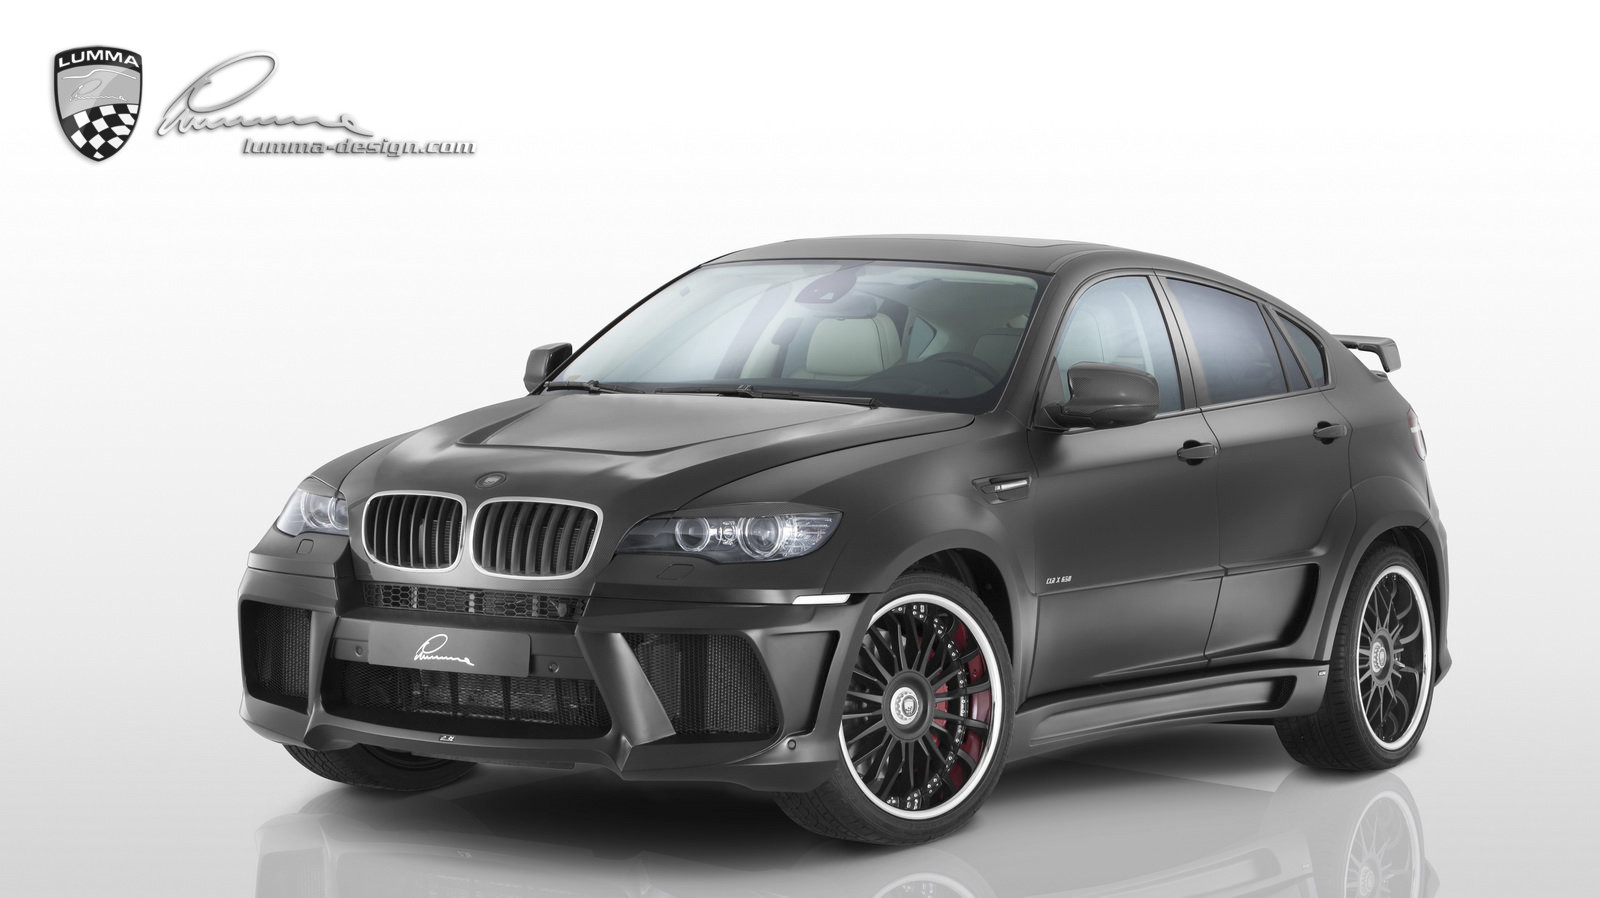 LUMMA-vehicle: CLR X 650 M